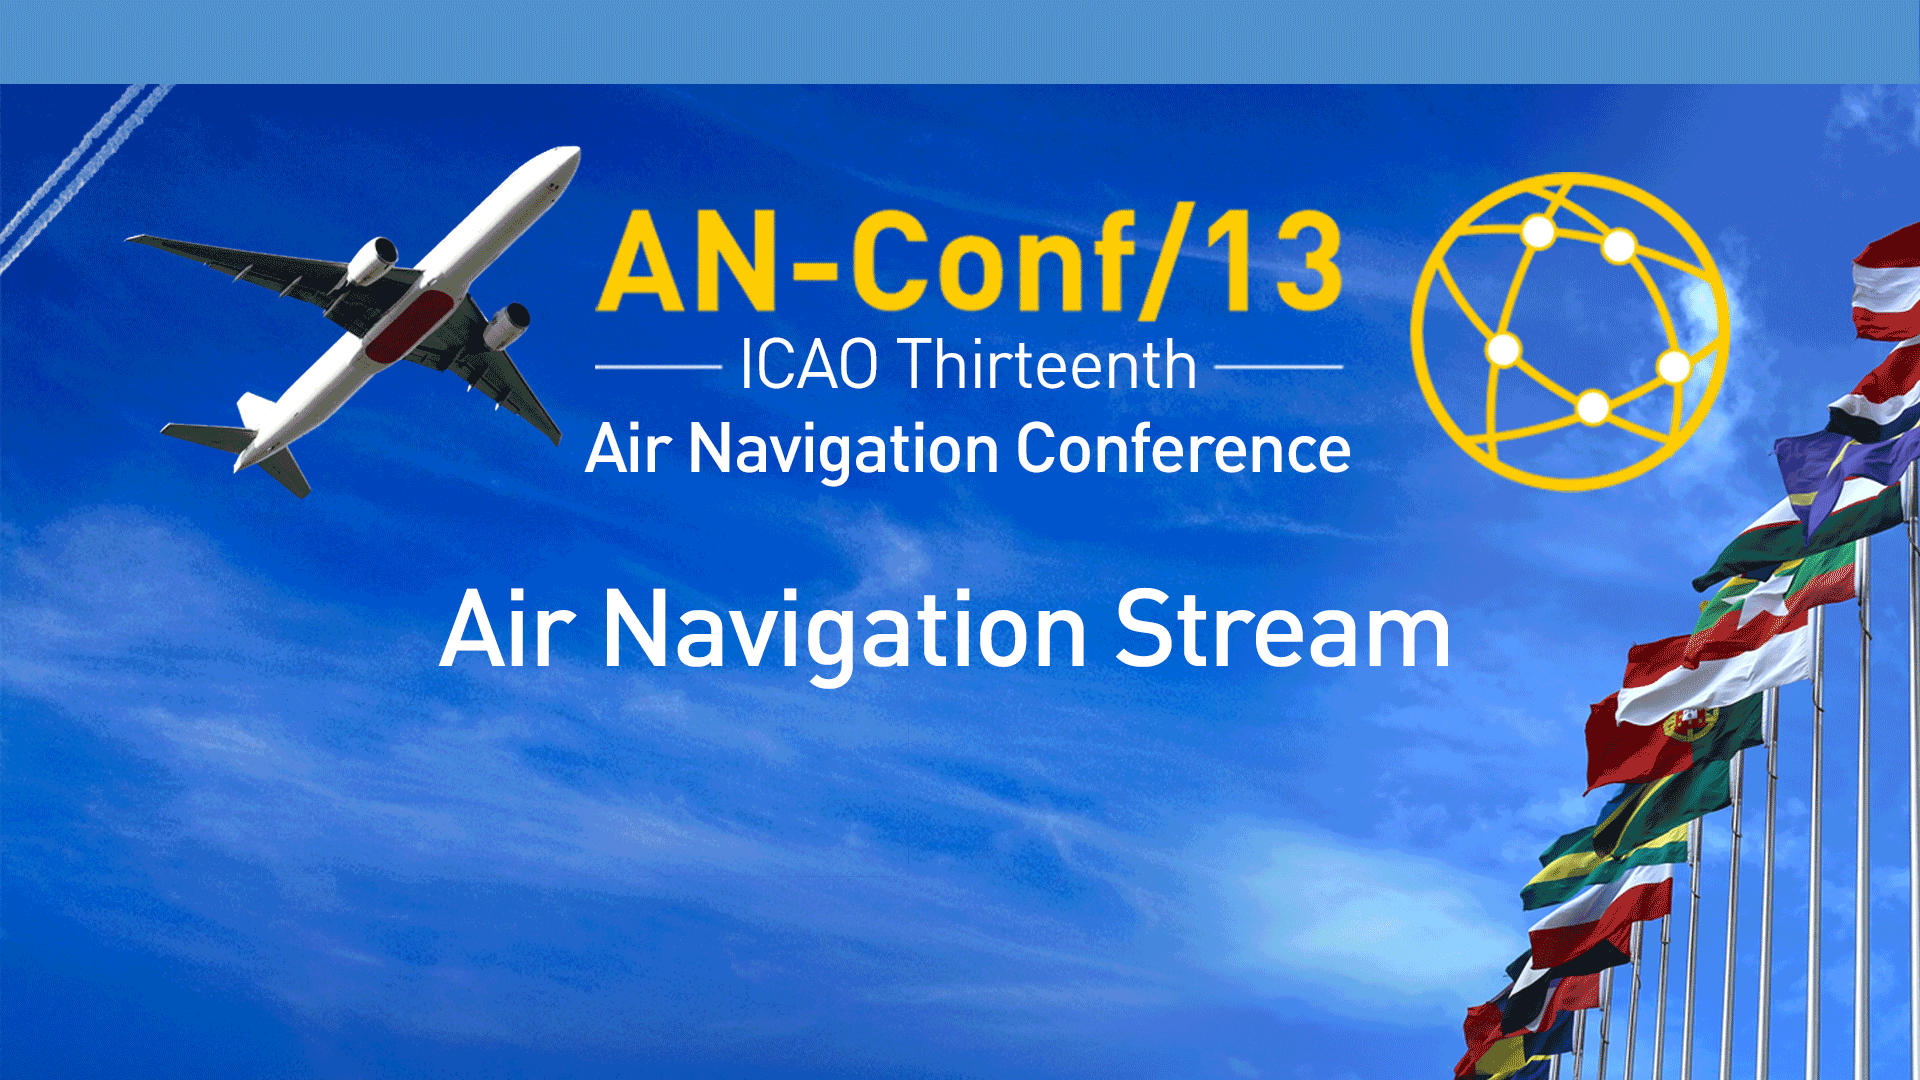 AIR NAVIGATION CONFERENCE